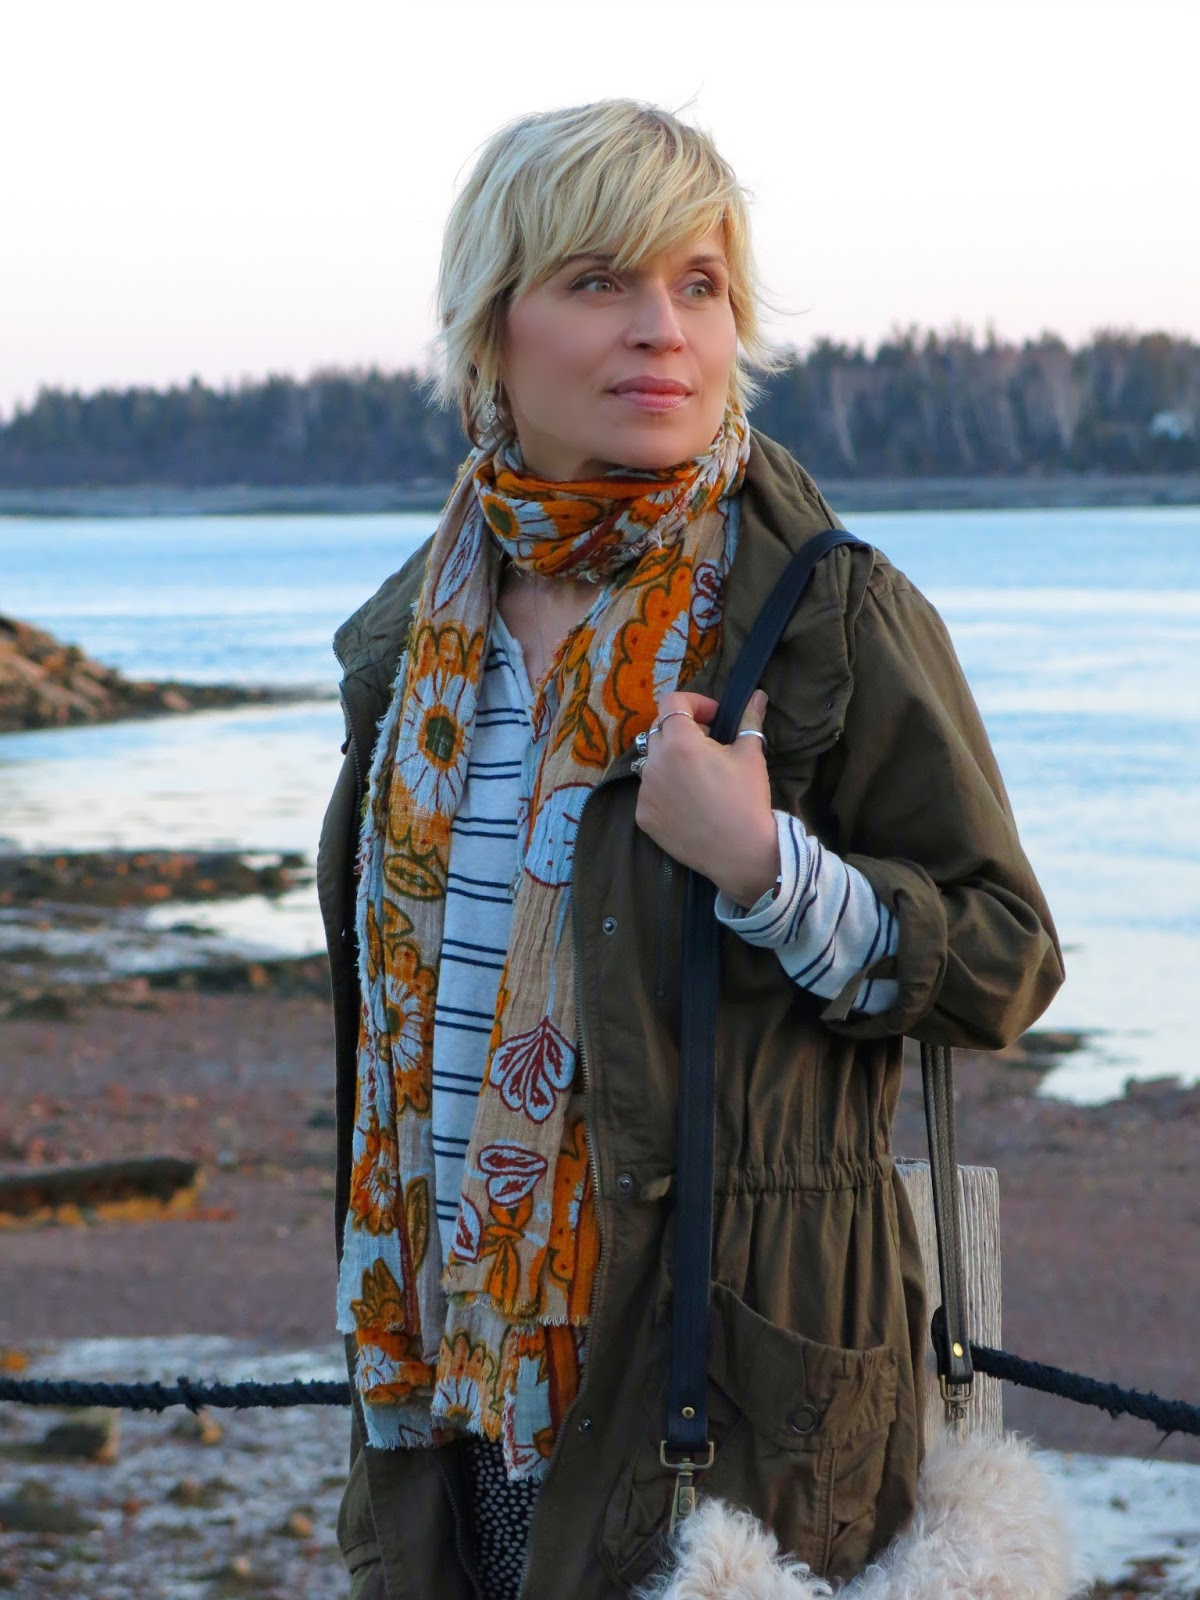 styling dotted skinnies with a striped top, floral scarf, army jacket and boots